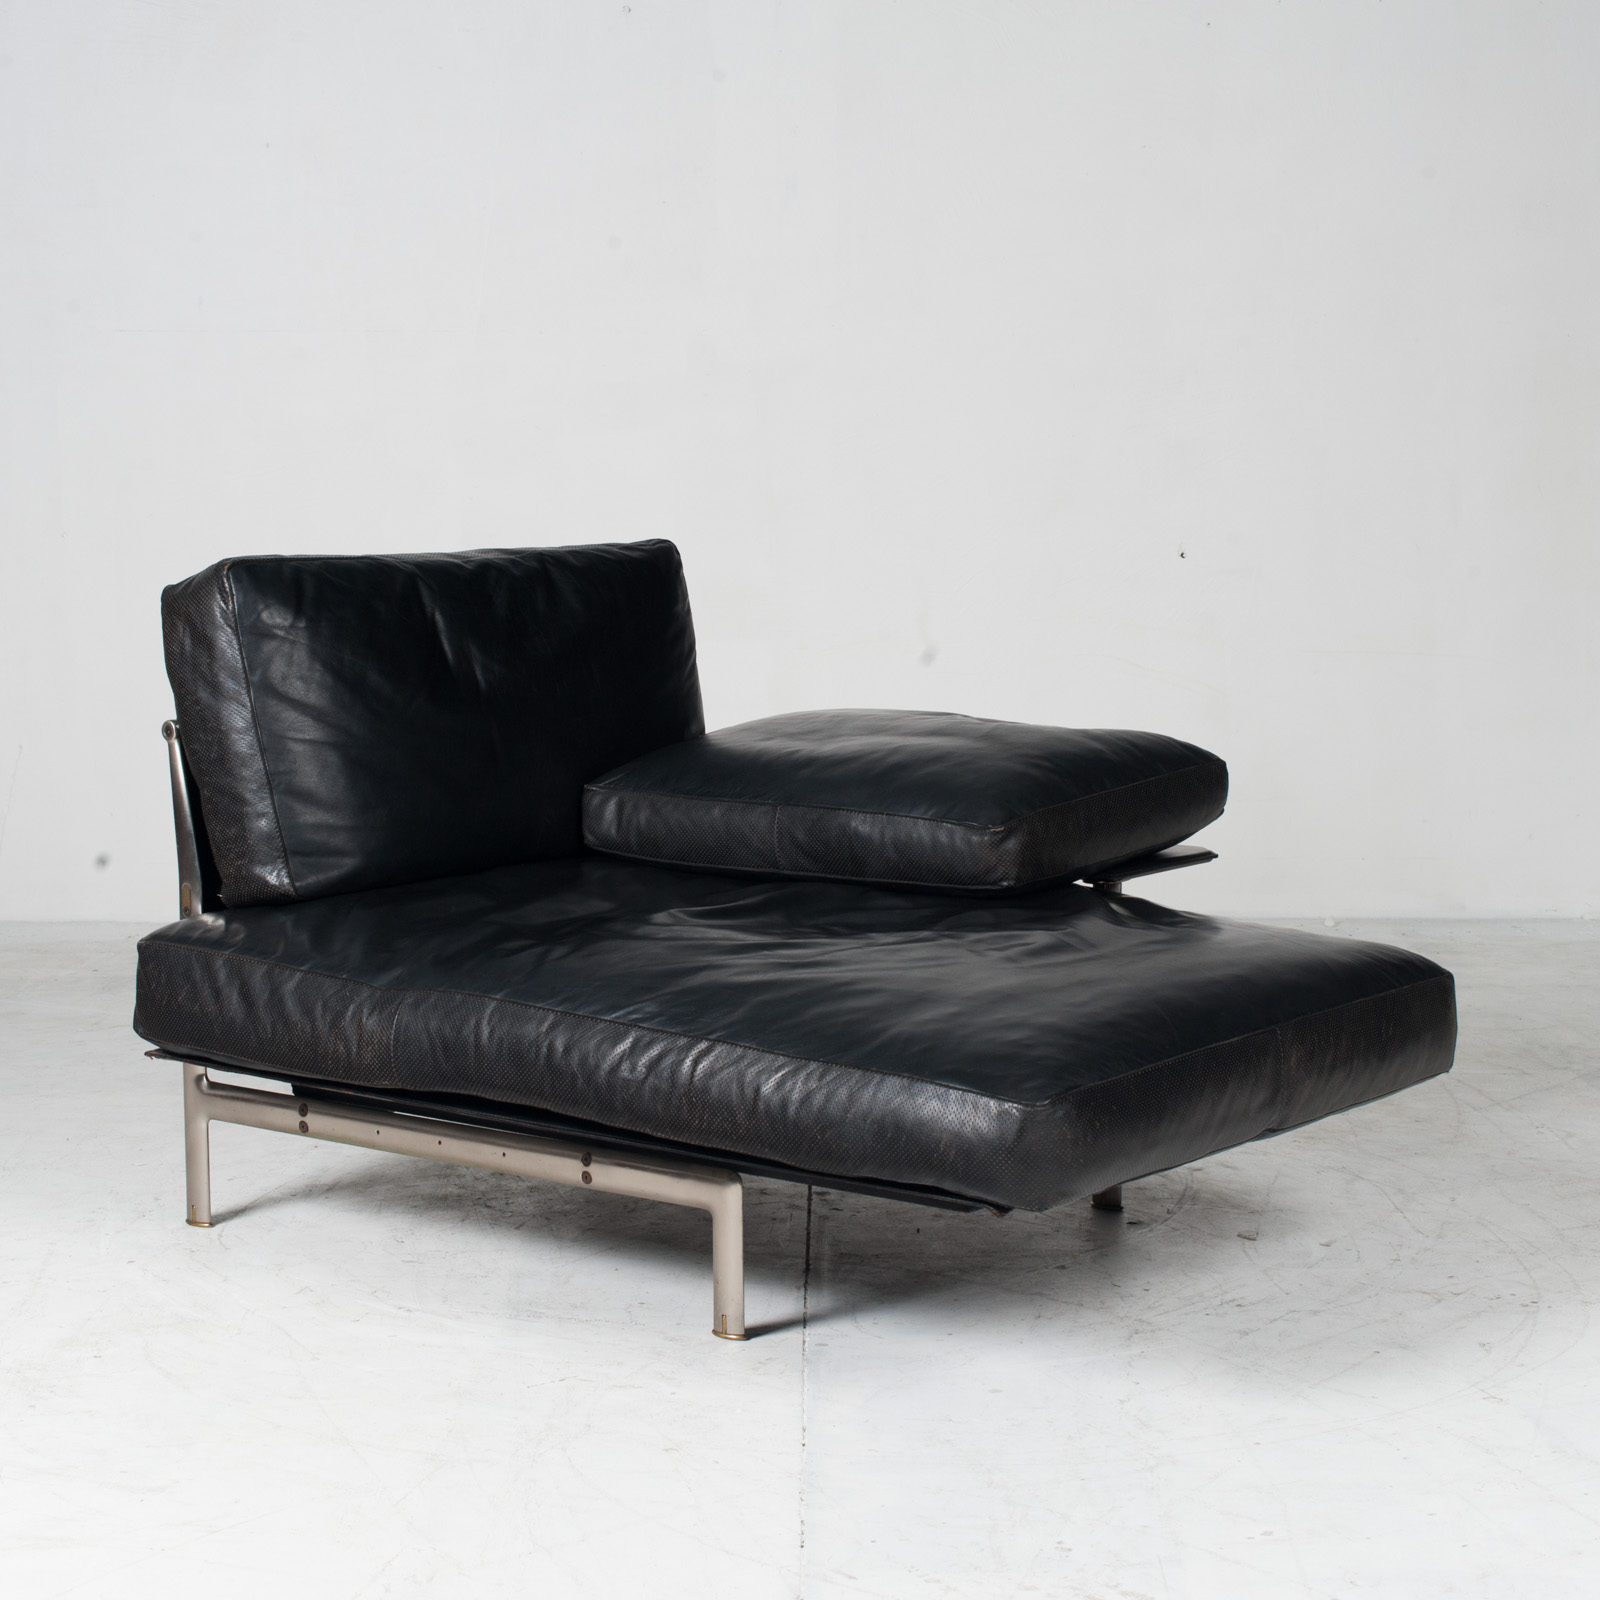 Model Diesis Chaise Lounge For B&b Italia By Antonio Citterio In Black Leather 1970s Italy 04